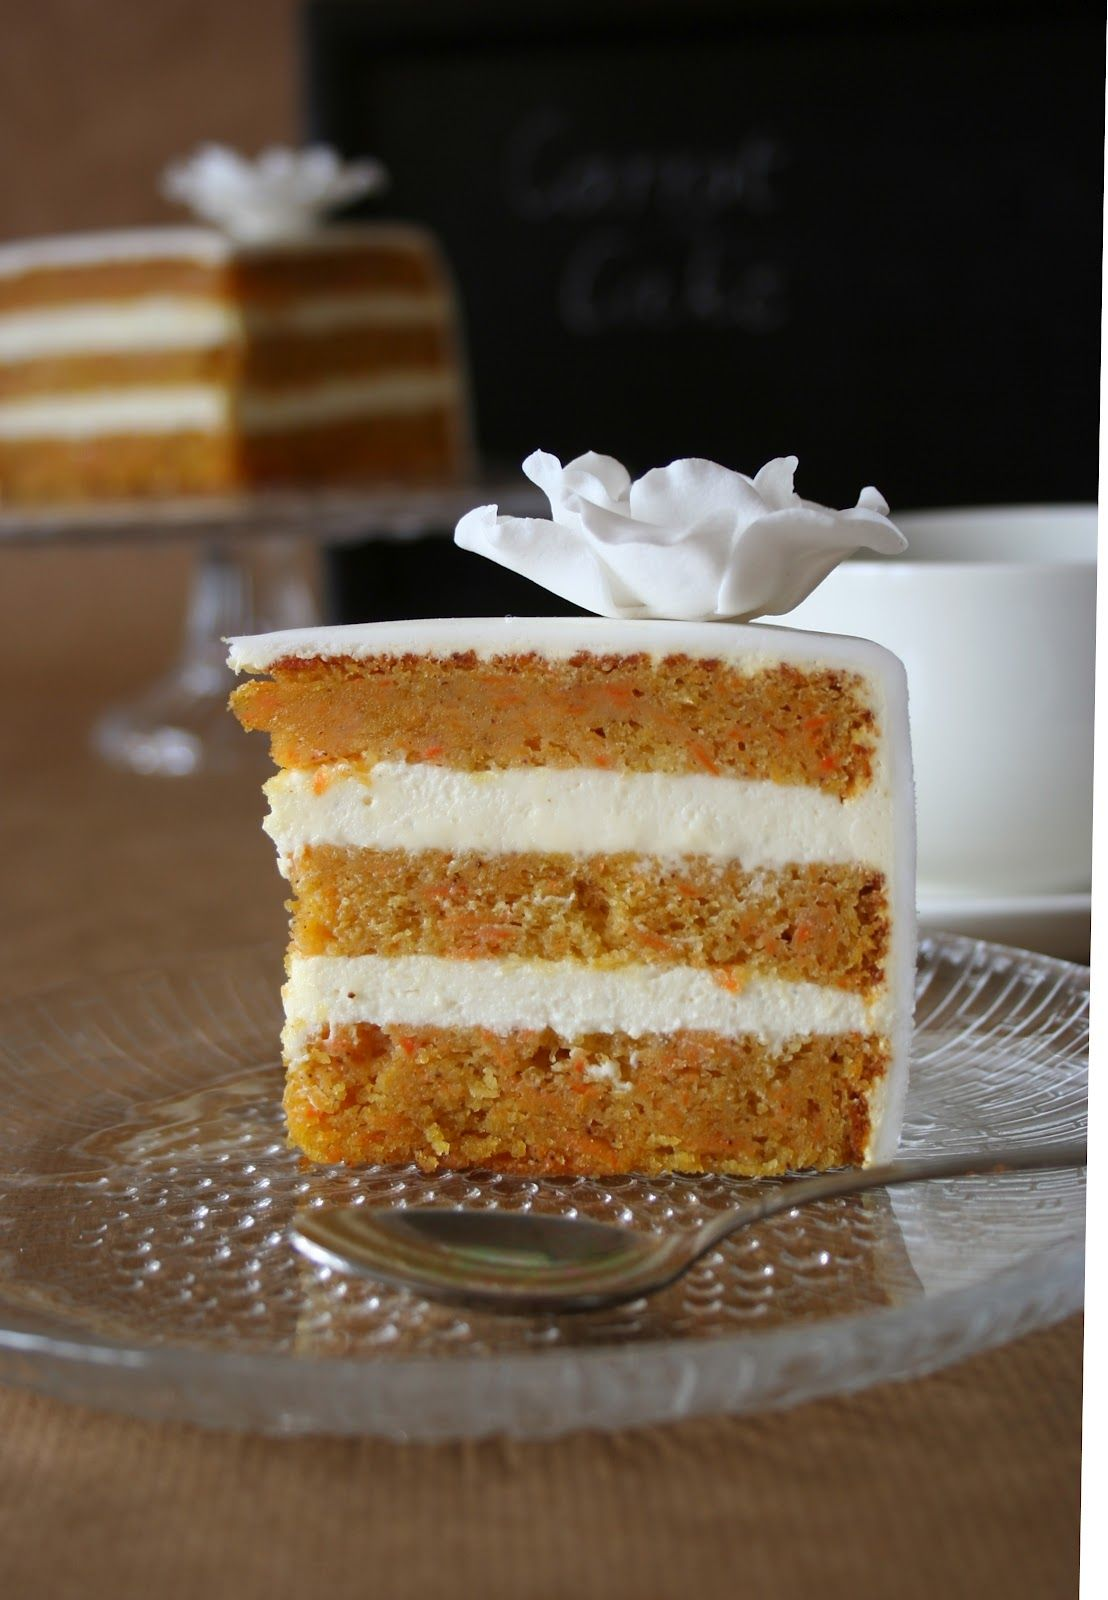 Carrot cake with Cream cheese filling and buttercream frosting